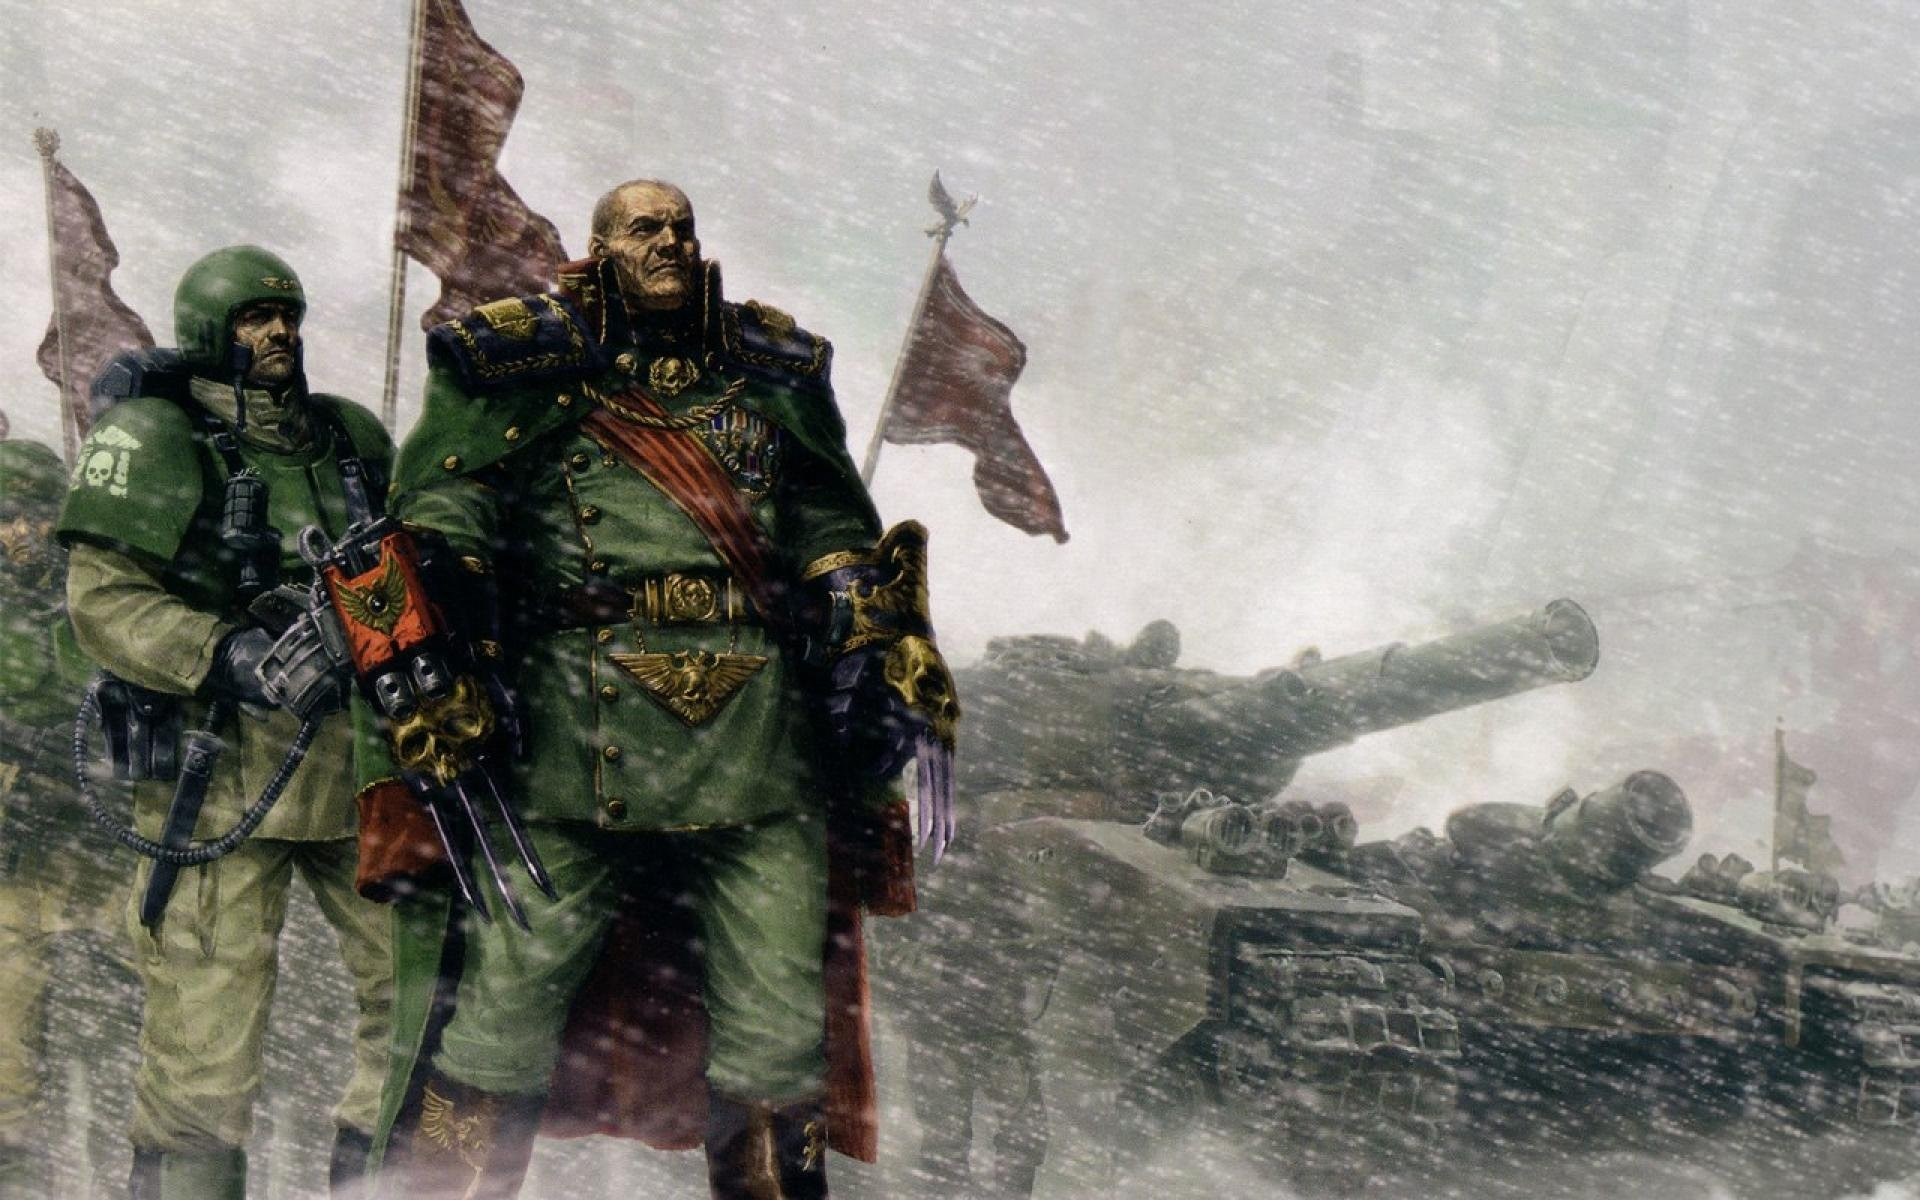 1920x1200 Imperial Guard Warhammer Wallpaper » WallDevil - Best free HD desktop .